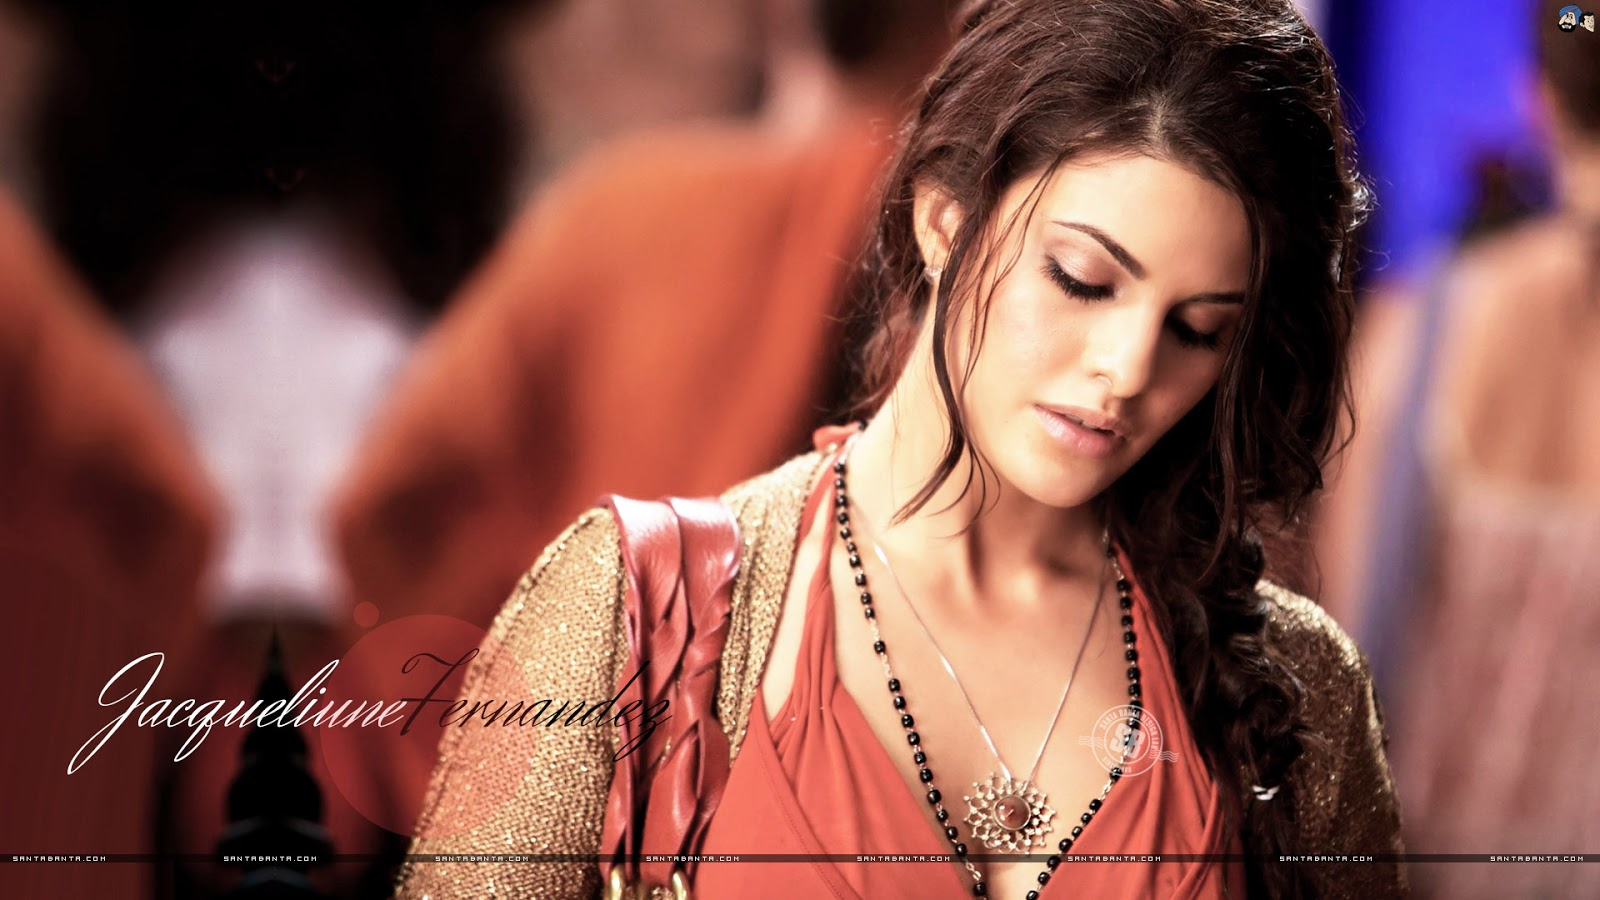 Free Download Full Hd Wallpaper Jacqueline Fernandez: Jacqueline Fernandez HD Wallpapers